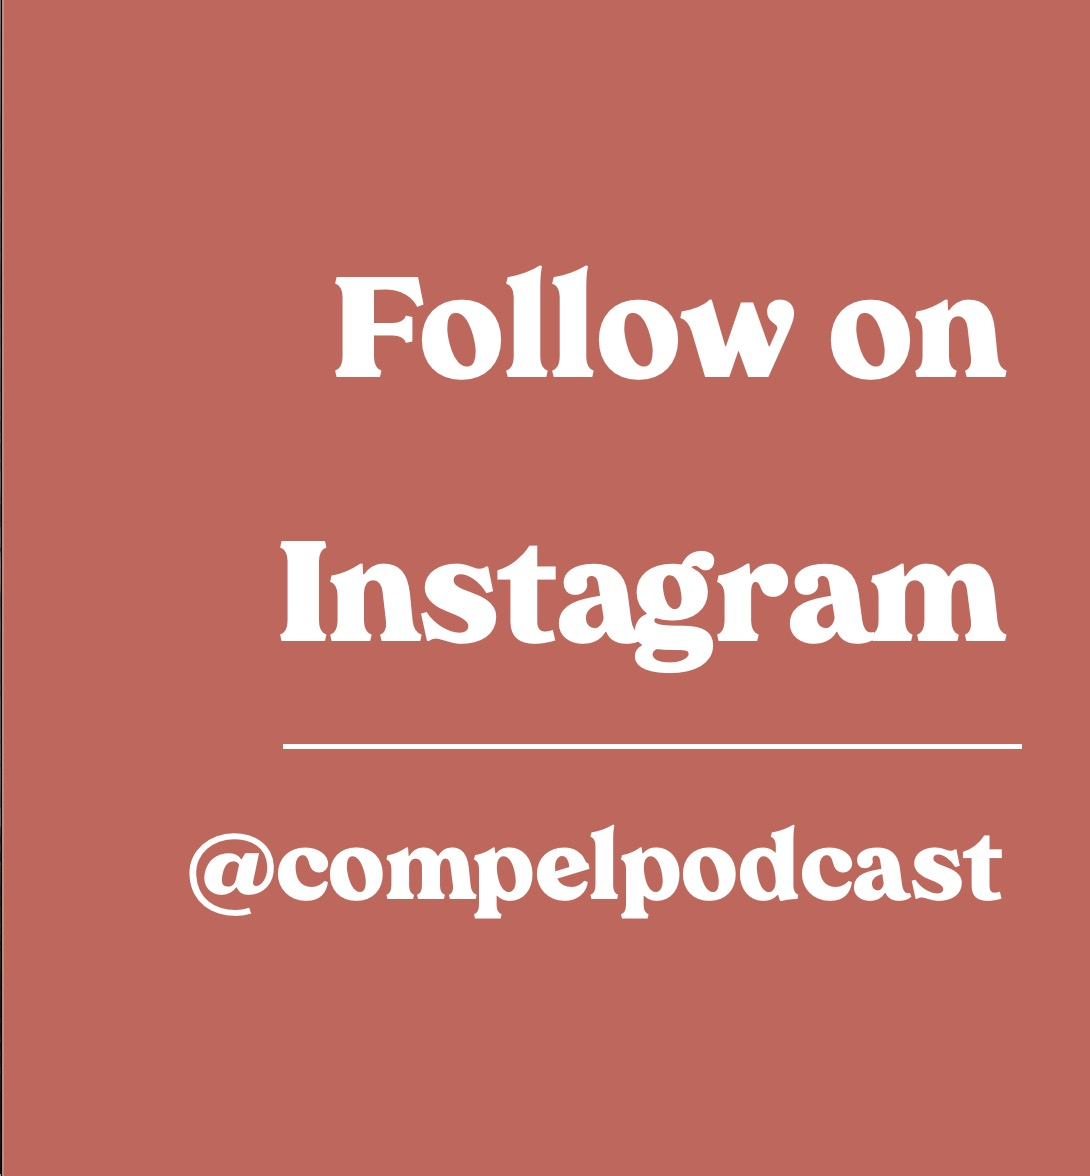 Button saying 'follow on instagram with the instagram handle @compelpodcast' width=